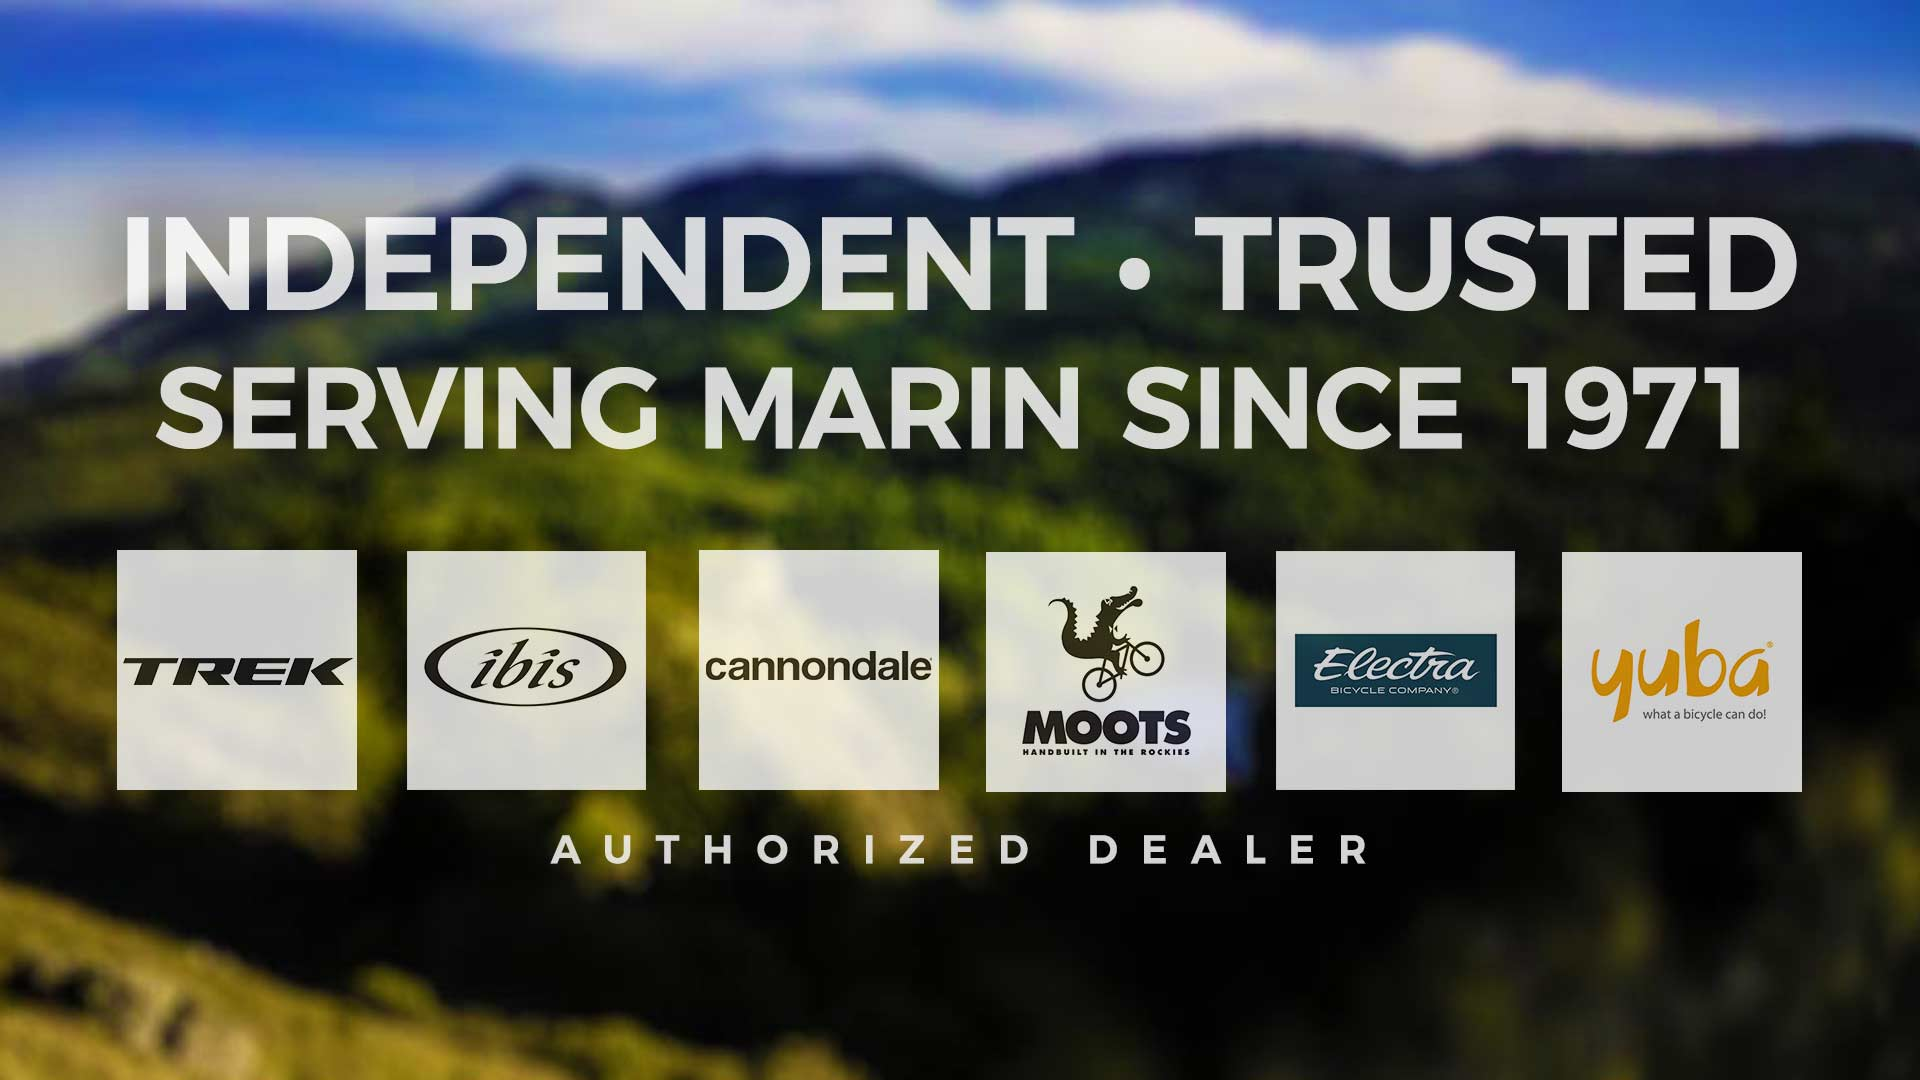 Sunshine Bicycle Center - Independent, Trusted, Serving Marin County Since 1971. Authorized dealer of Trek, Ibis, Cannondale, Moots, Electra and Yuba.